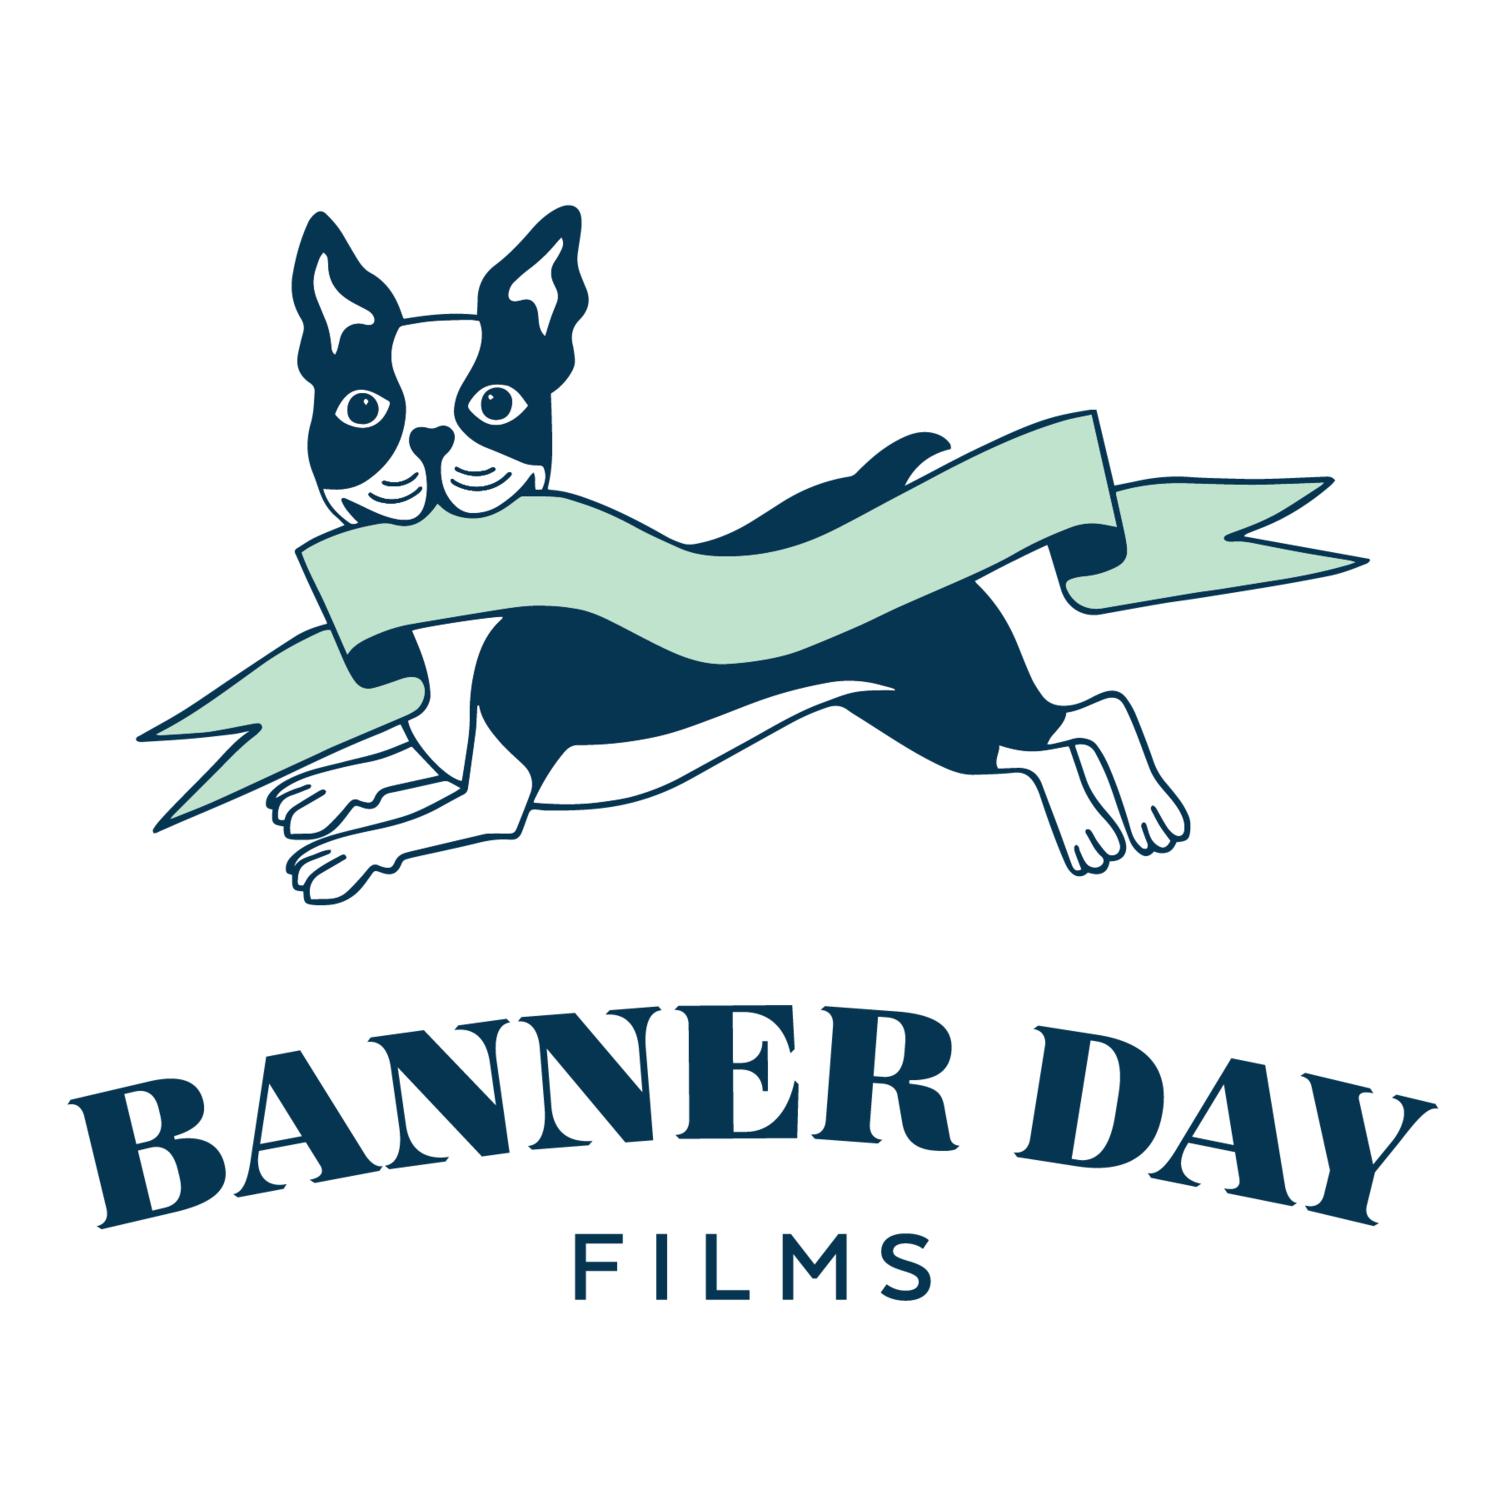 Banner Day Films